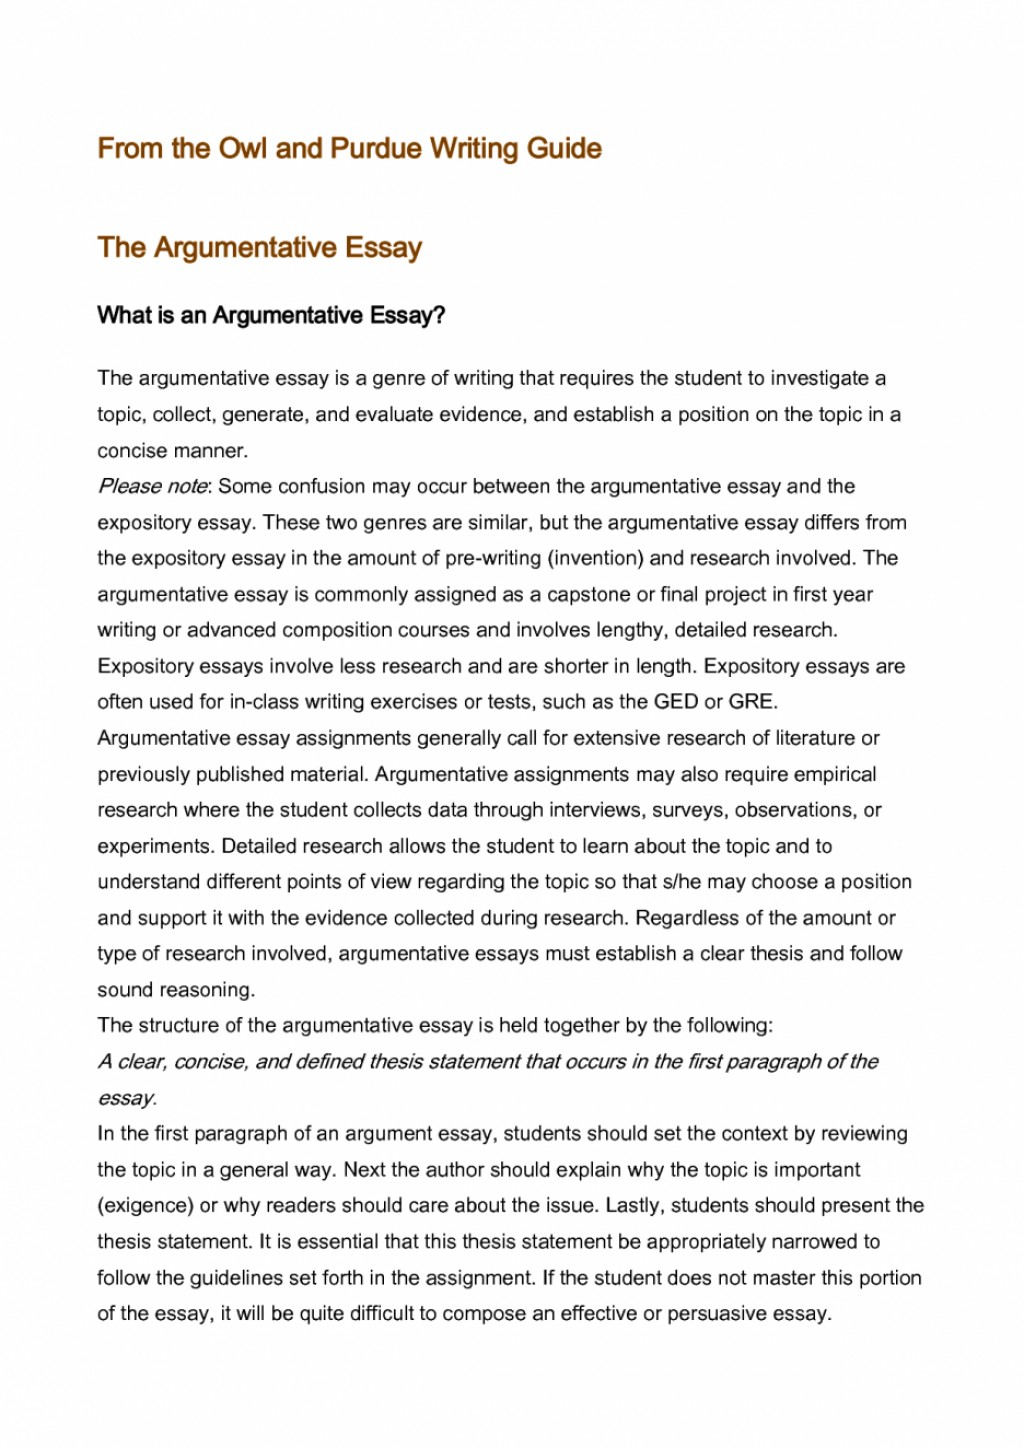 010 Rogerian Argument Essay Topics Example Cover Letter Evaluation Examples For Essays Of Paper Definition Formidable Topic Ideas Large